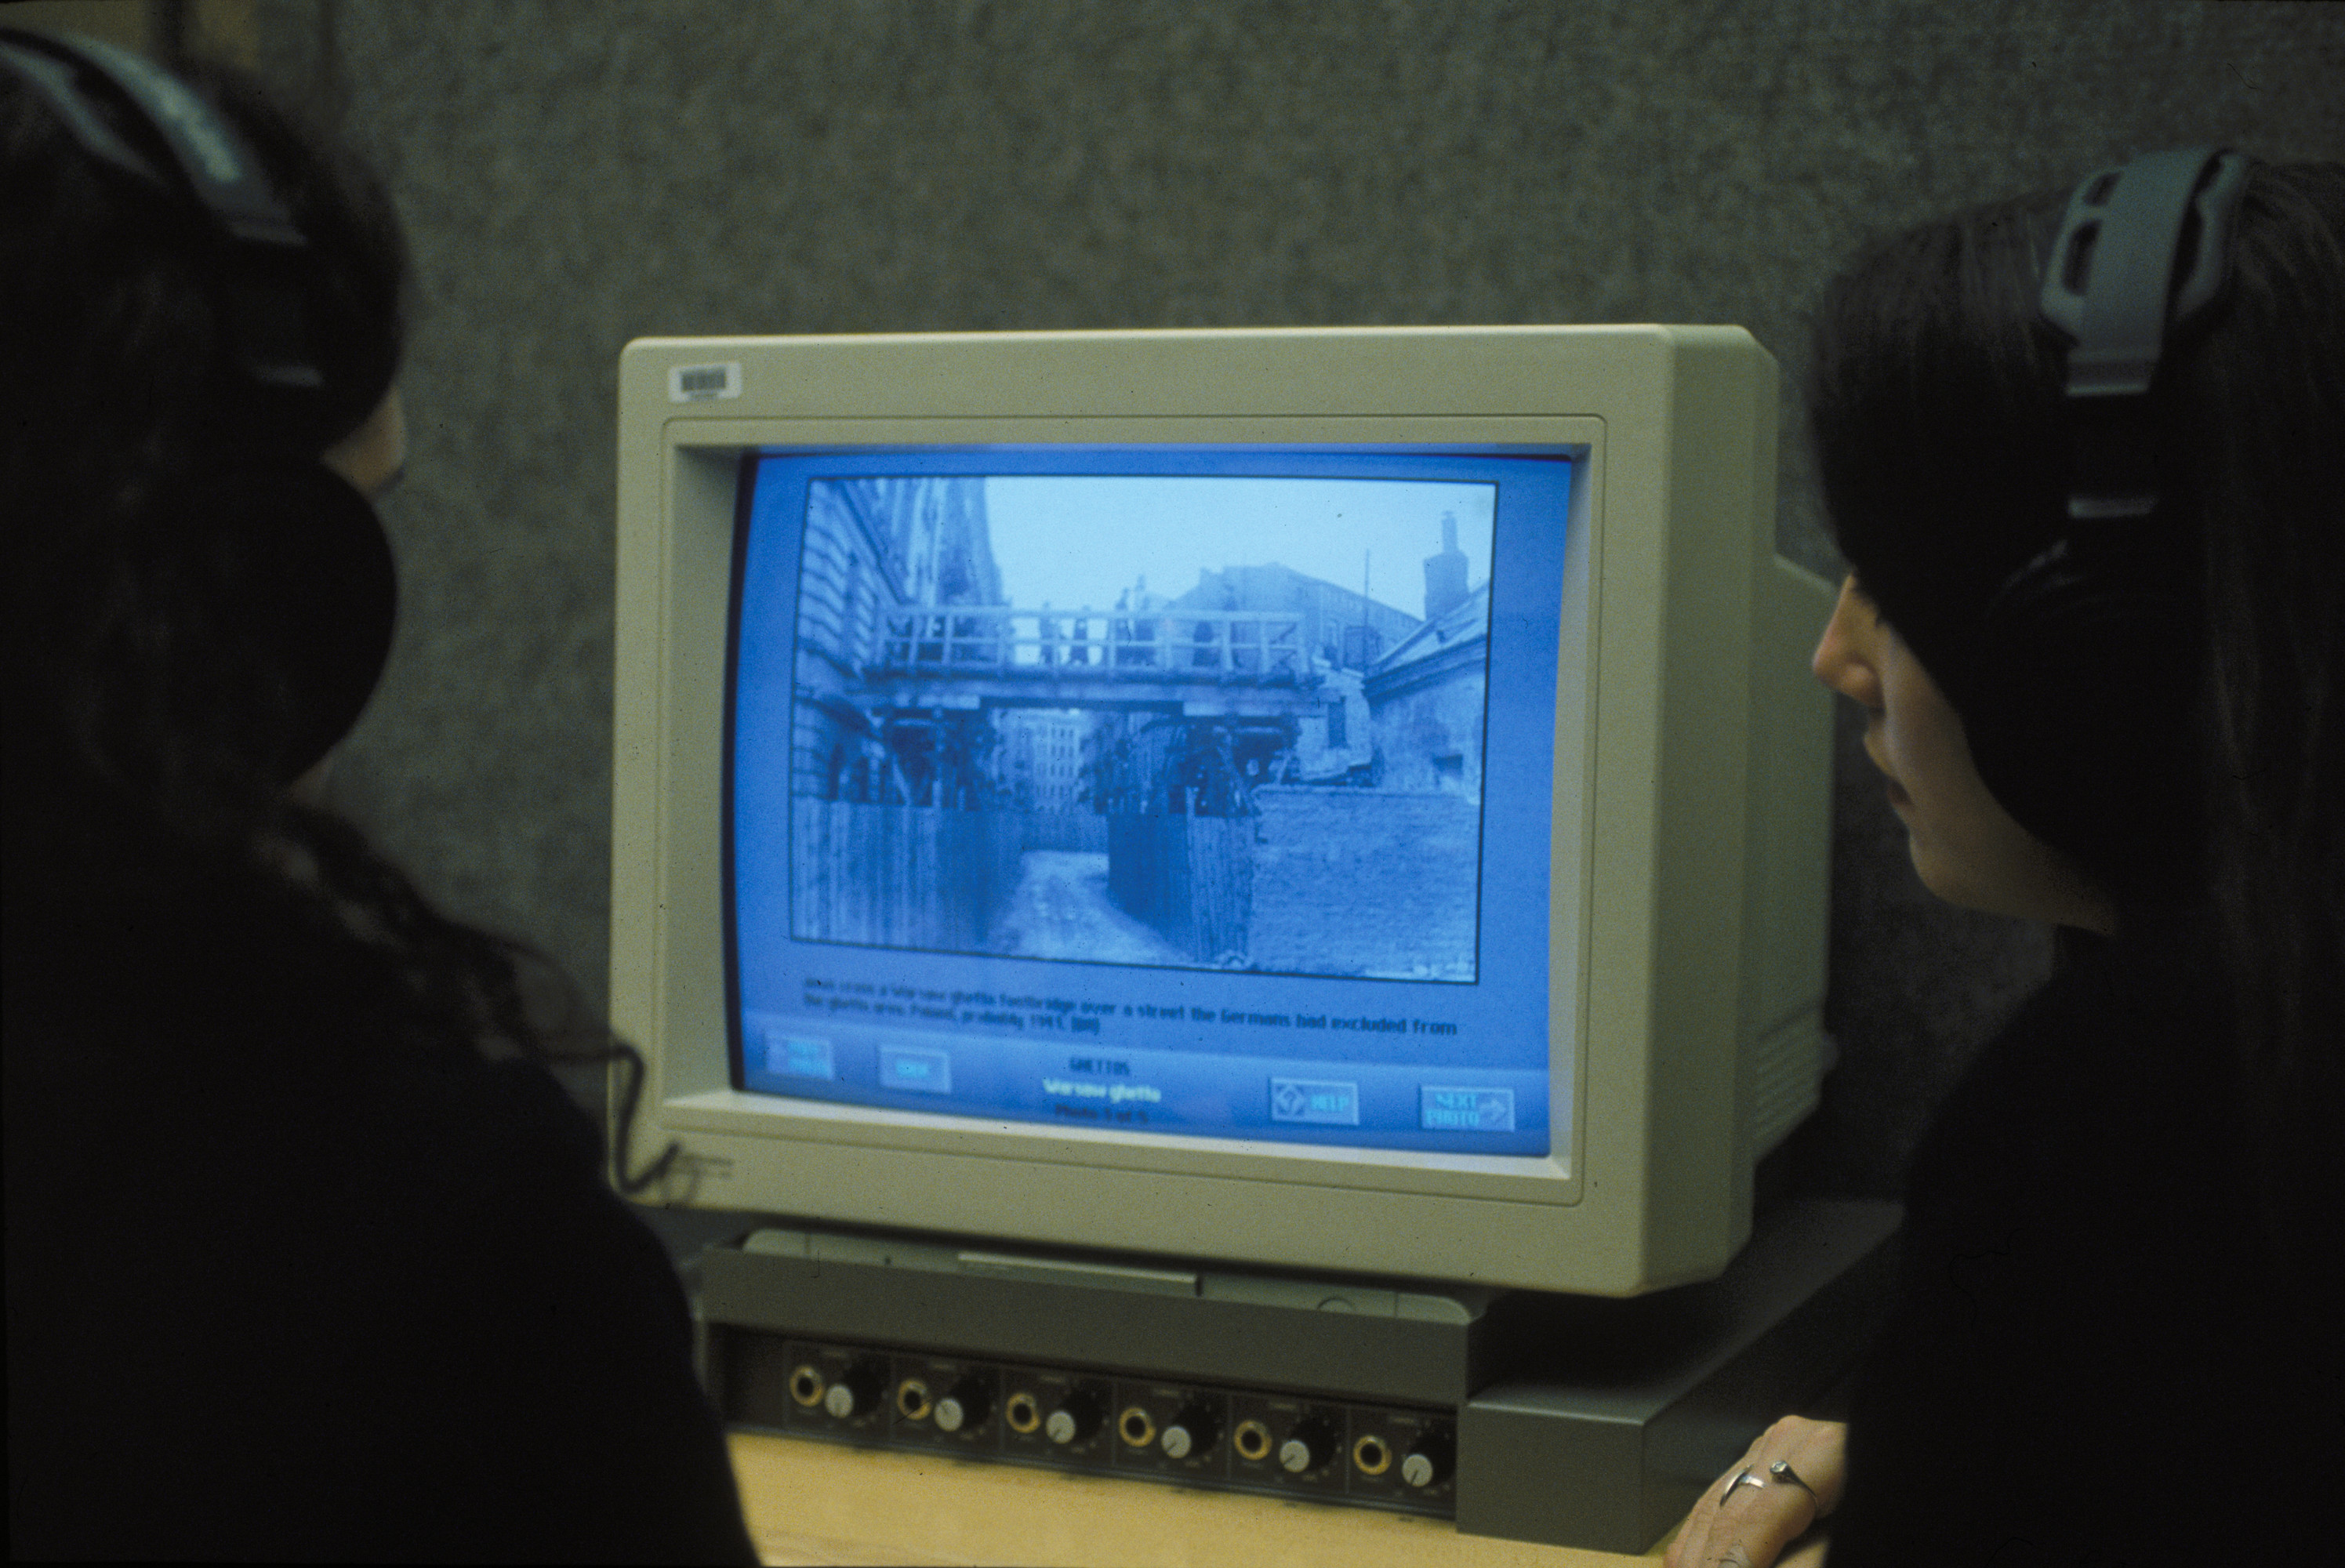 Two visitors in the Wexner Learning Center of the U.S. Holocaust Memorial Museum view a computer monitor displaying images from the Warsaw ghetto.